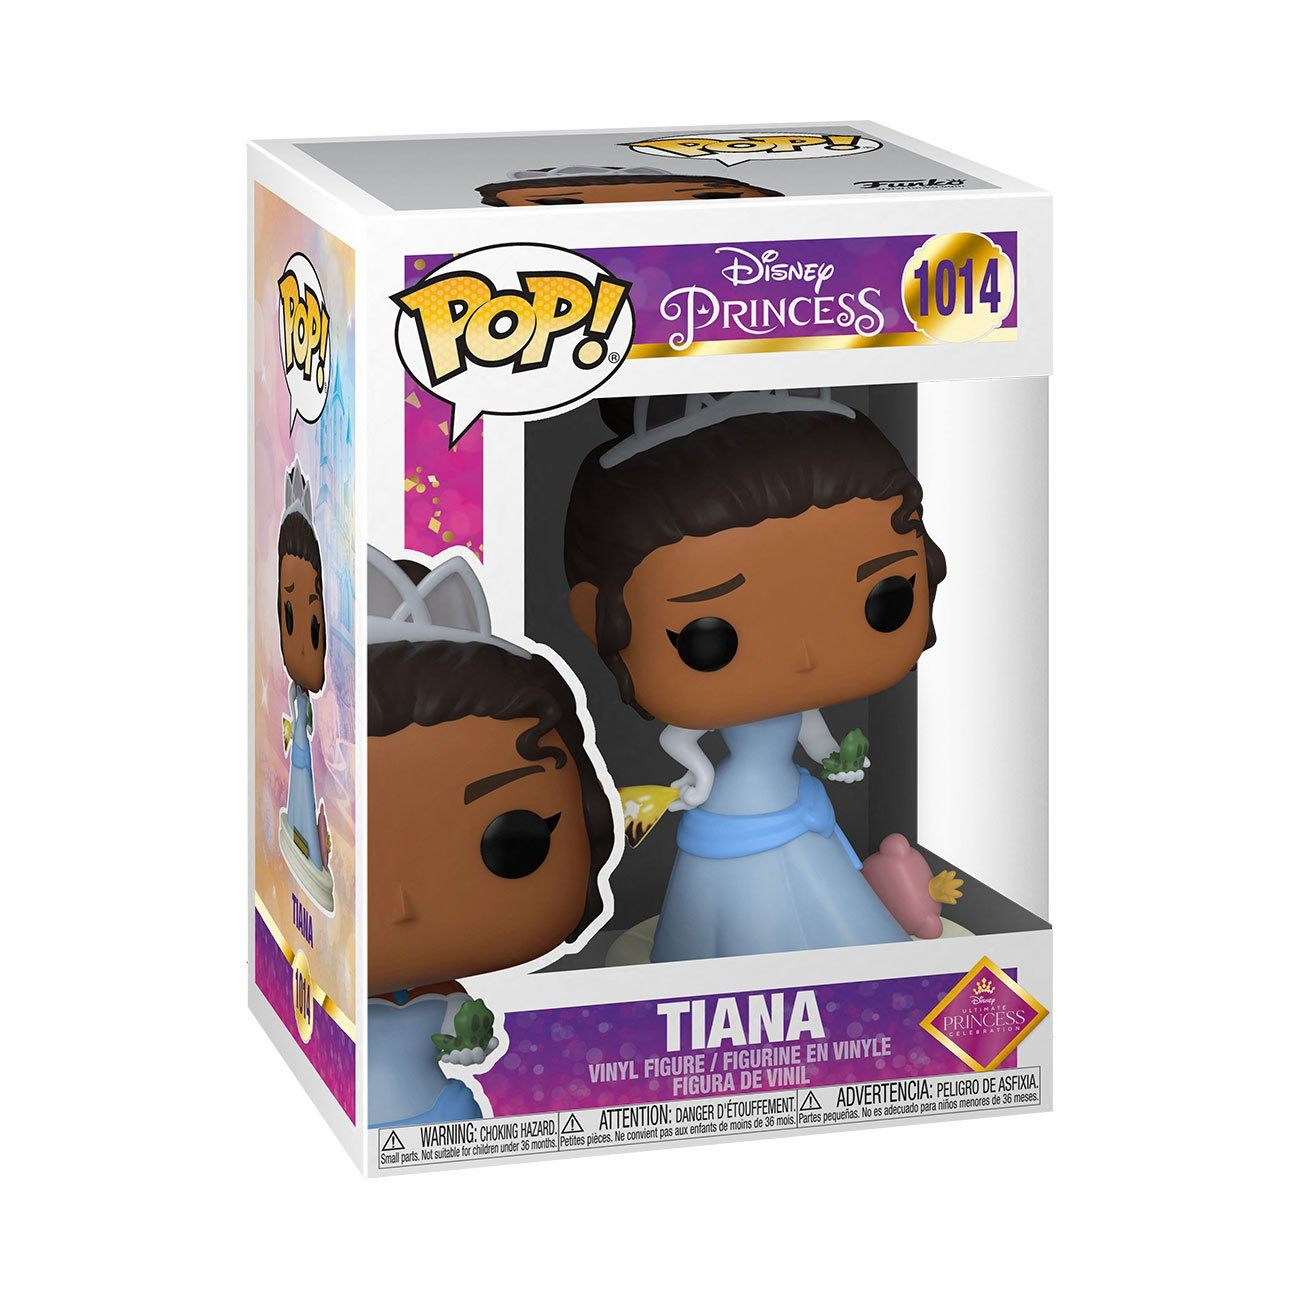 Tiana #1014 Ultimate Princess Funko POP! Disney [PRE-ORDER EXPECTED WINTER 2021*] POP! Funko